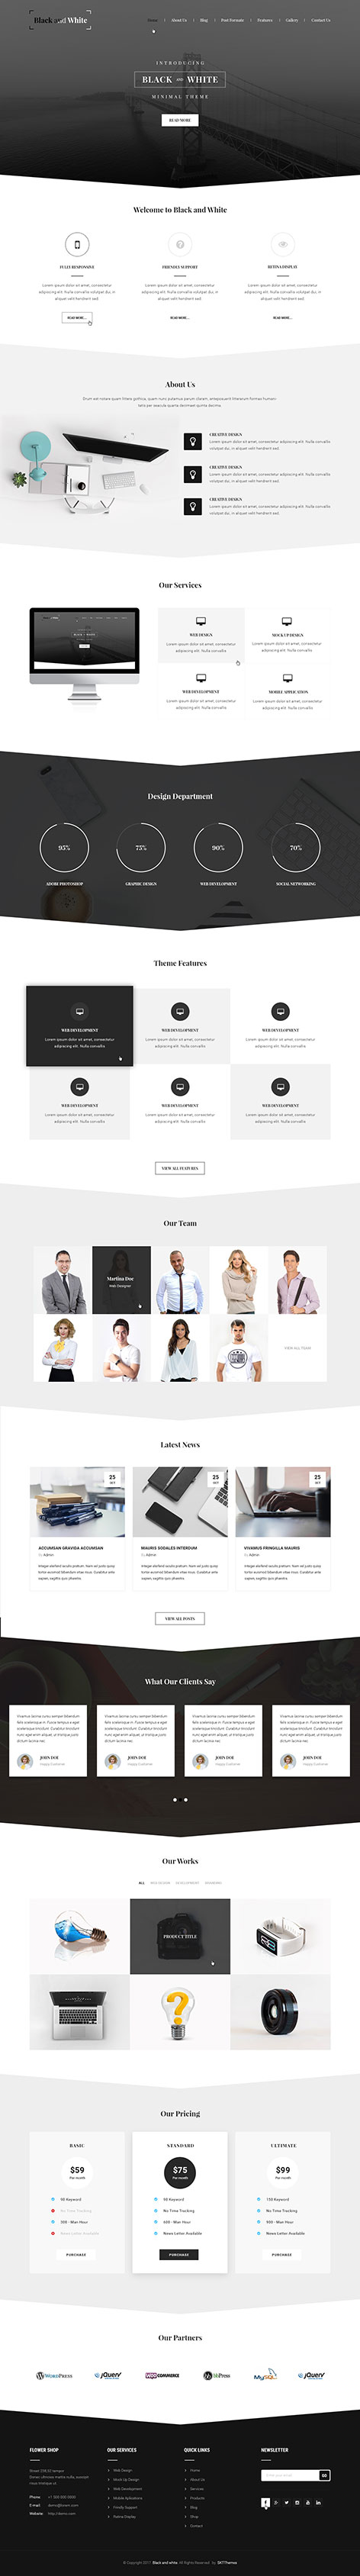 black and white WordPress theme